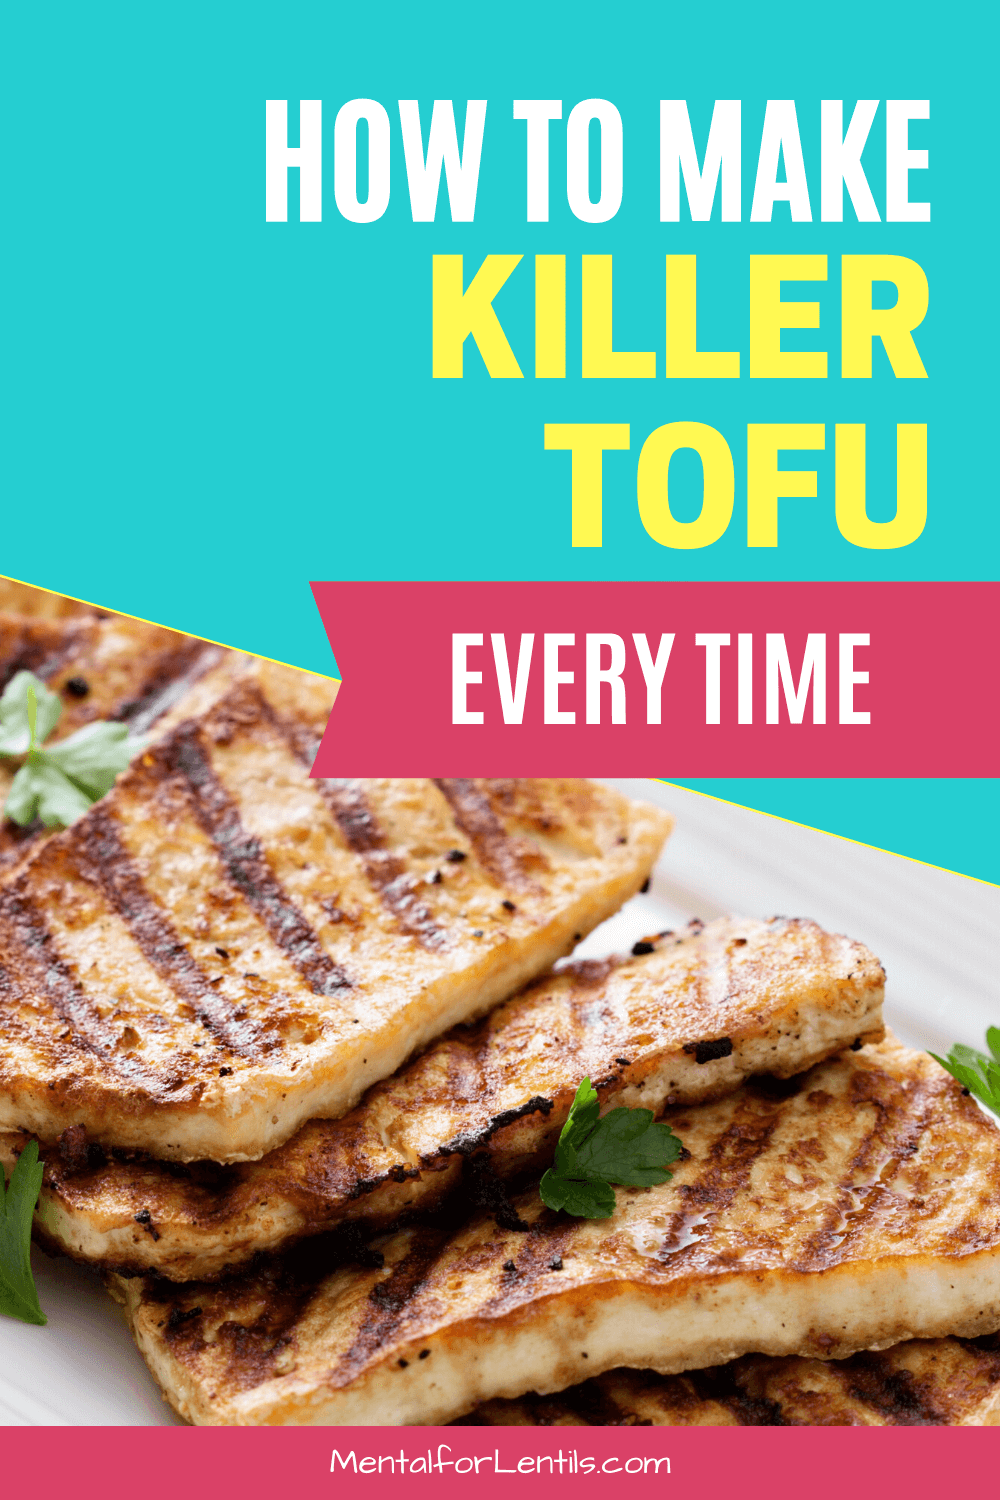 cooking with tofu pin image 2